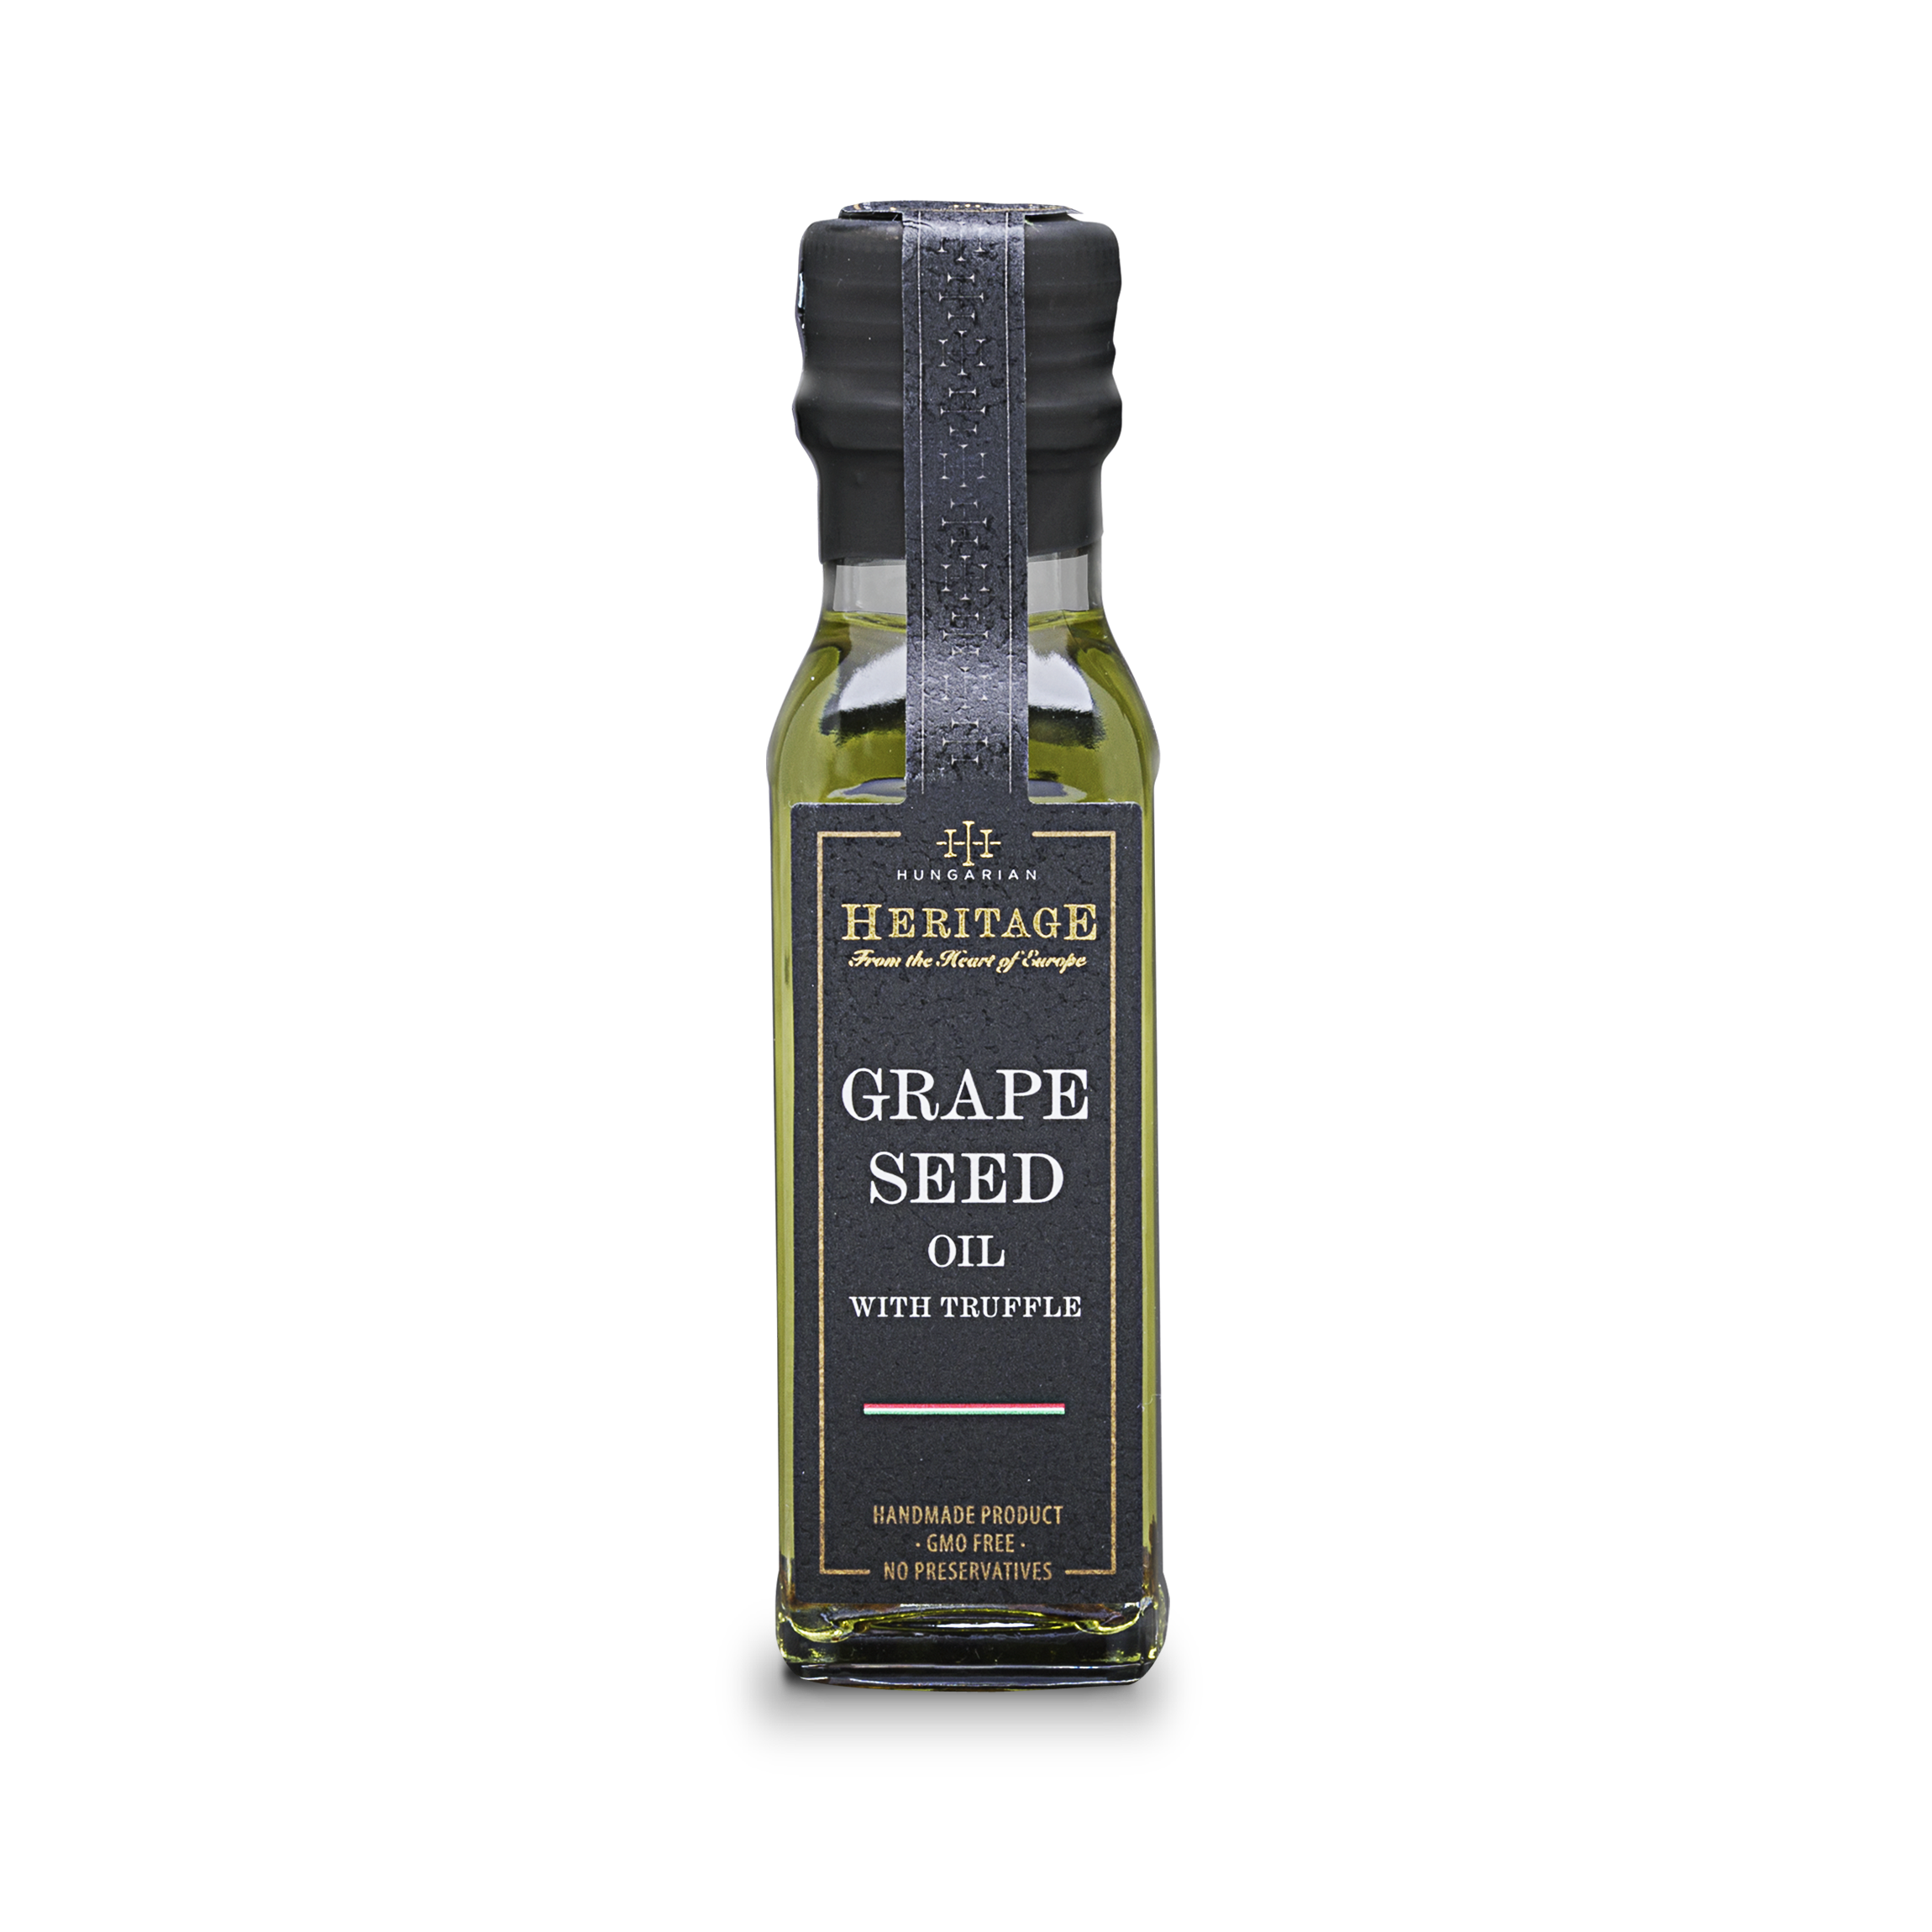 Grapeseed Oil with Truffle